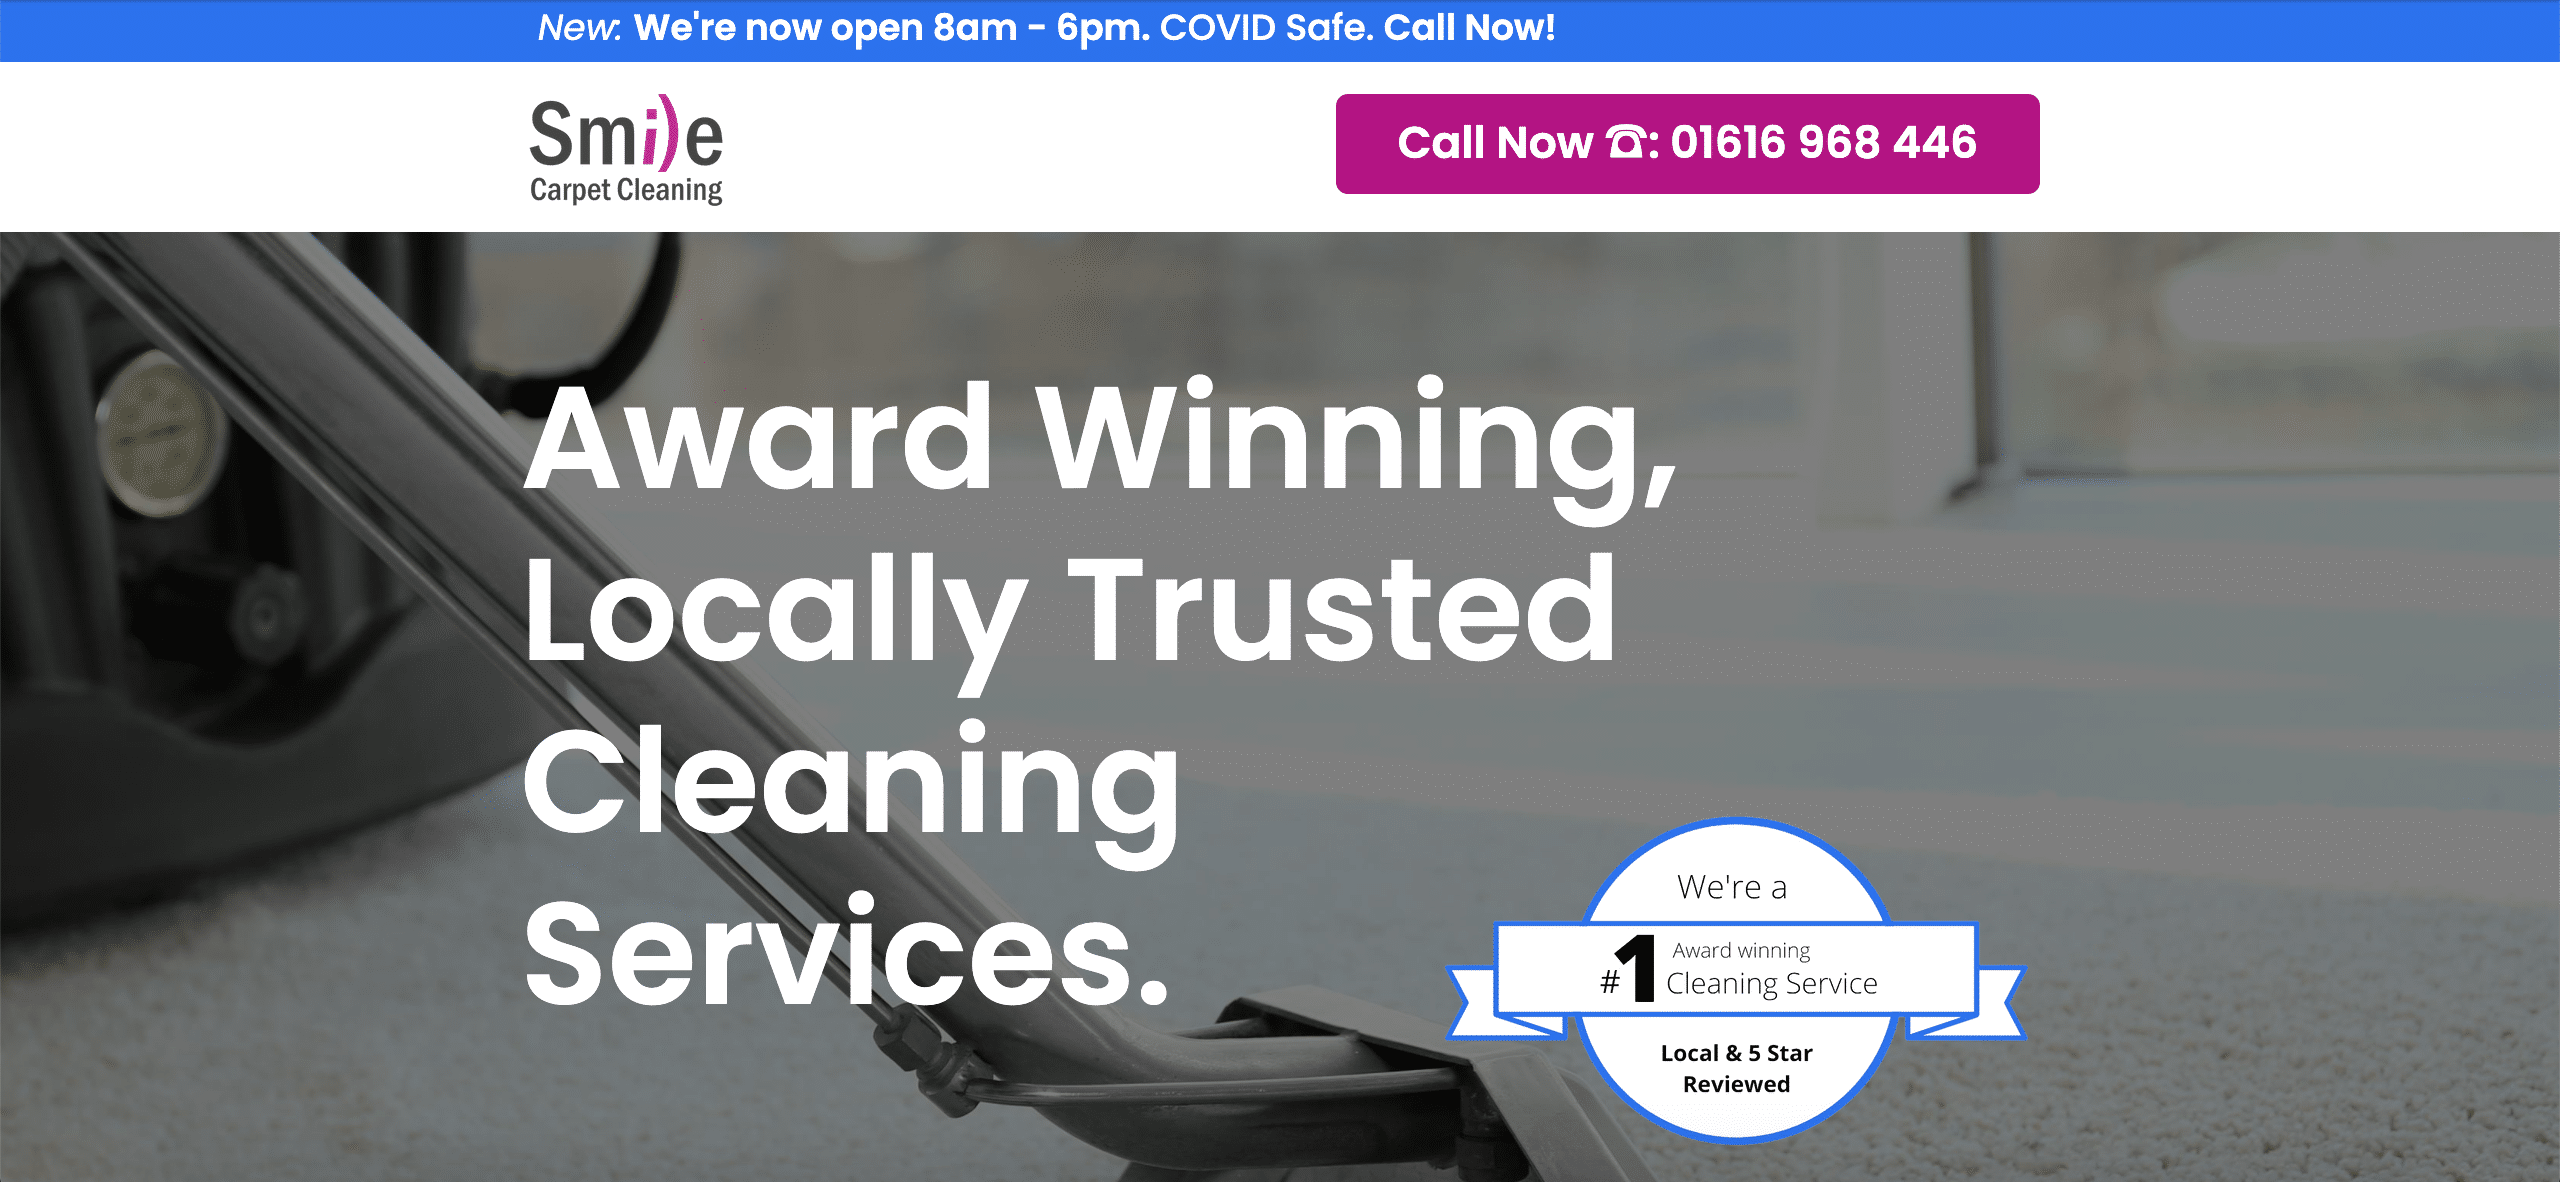 """Award Winning, Locally Based Cleaning Services""""."""